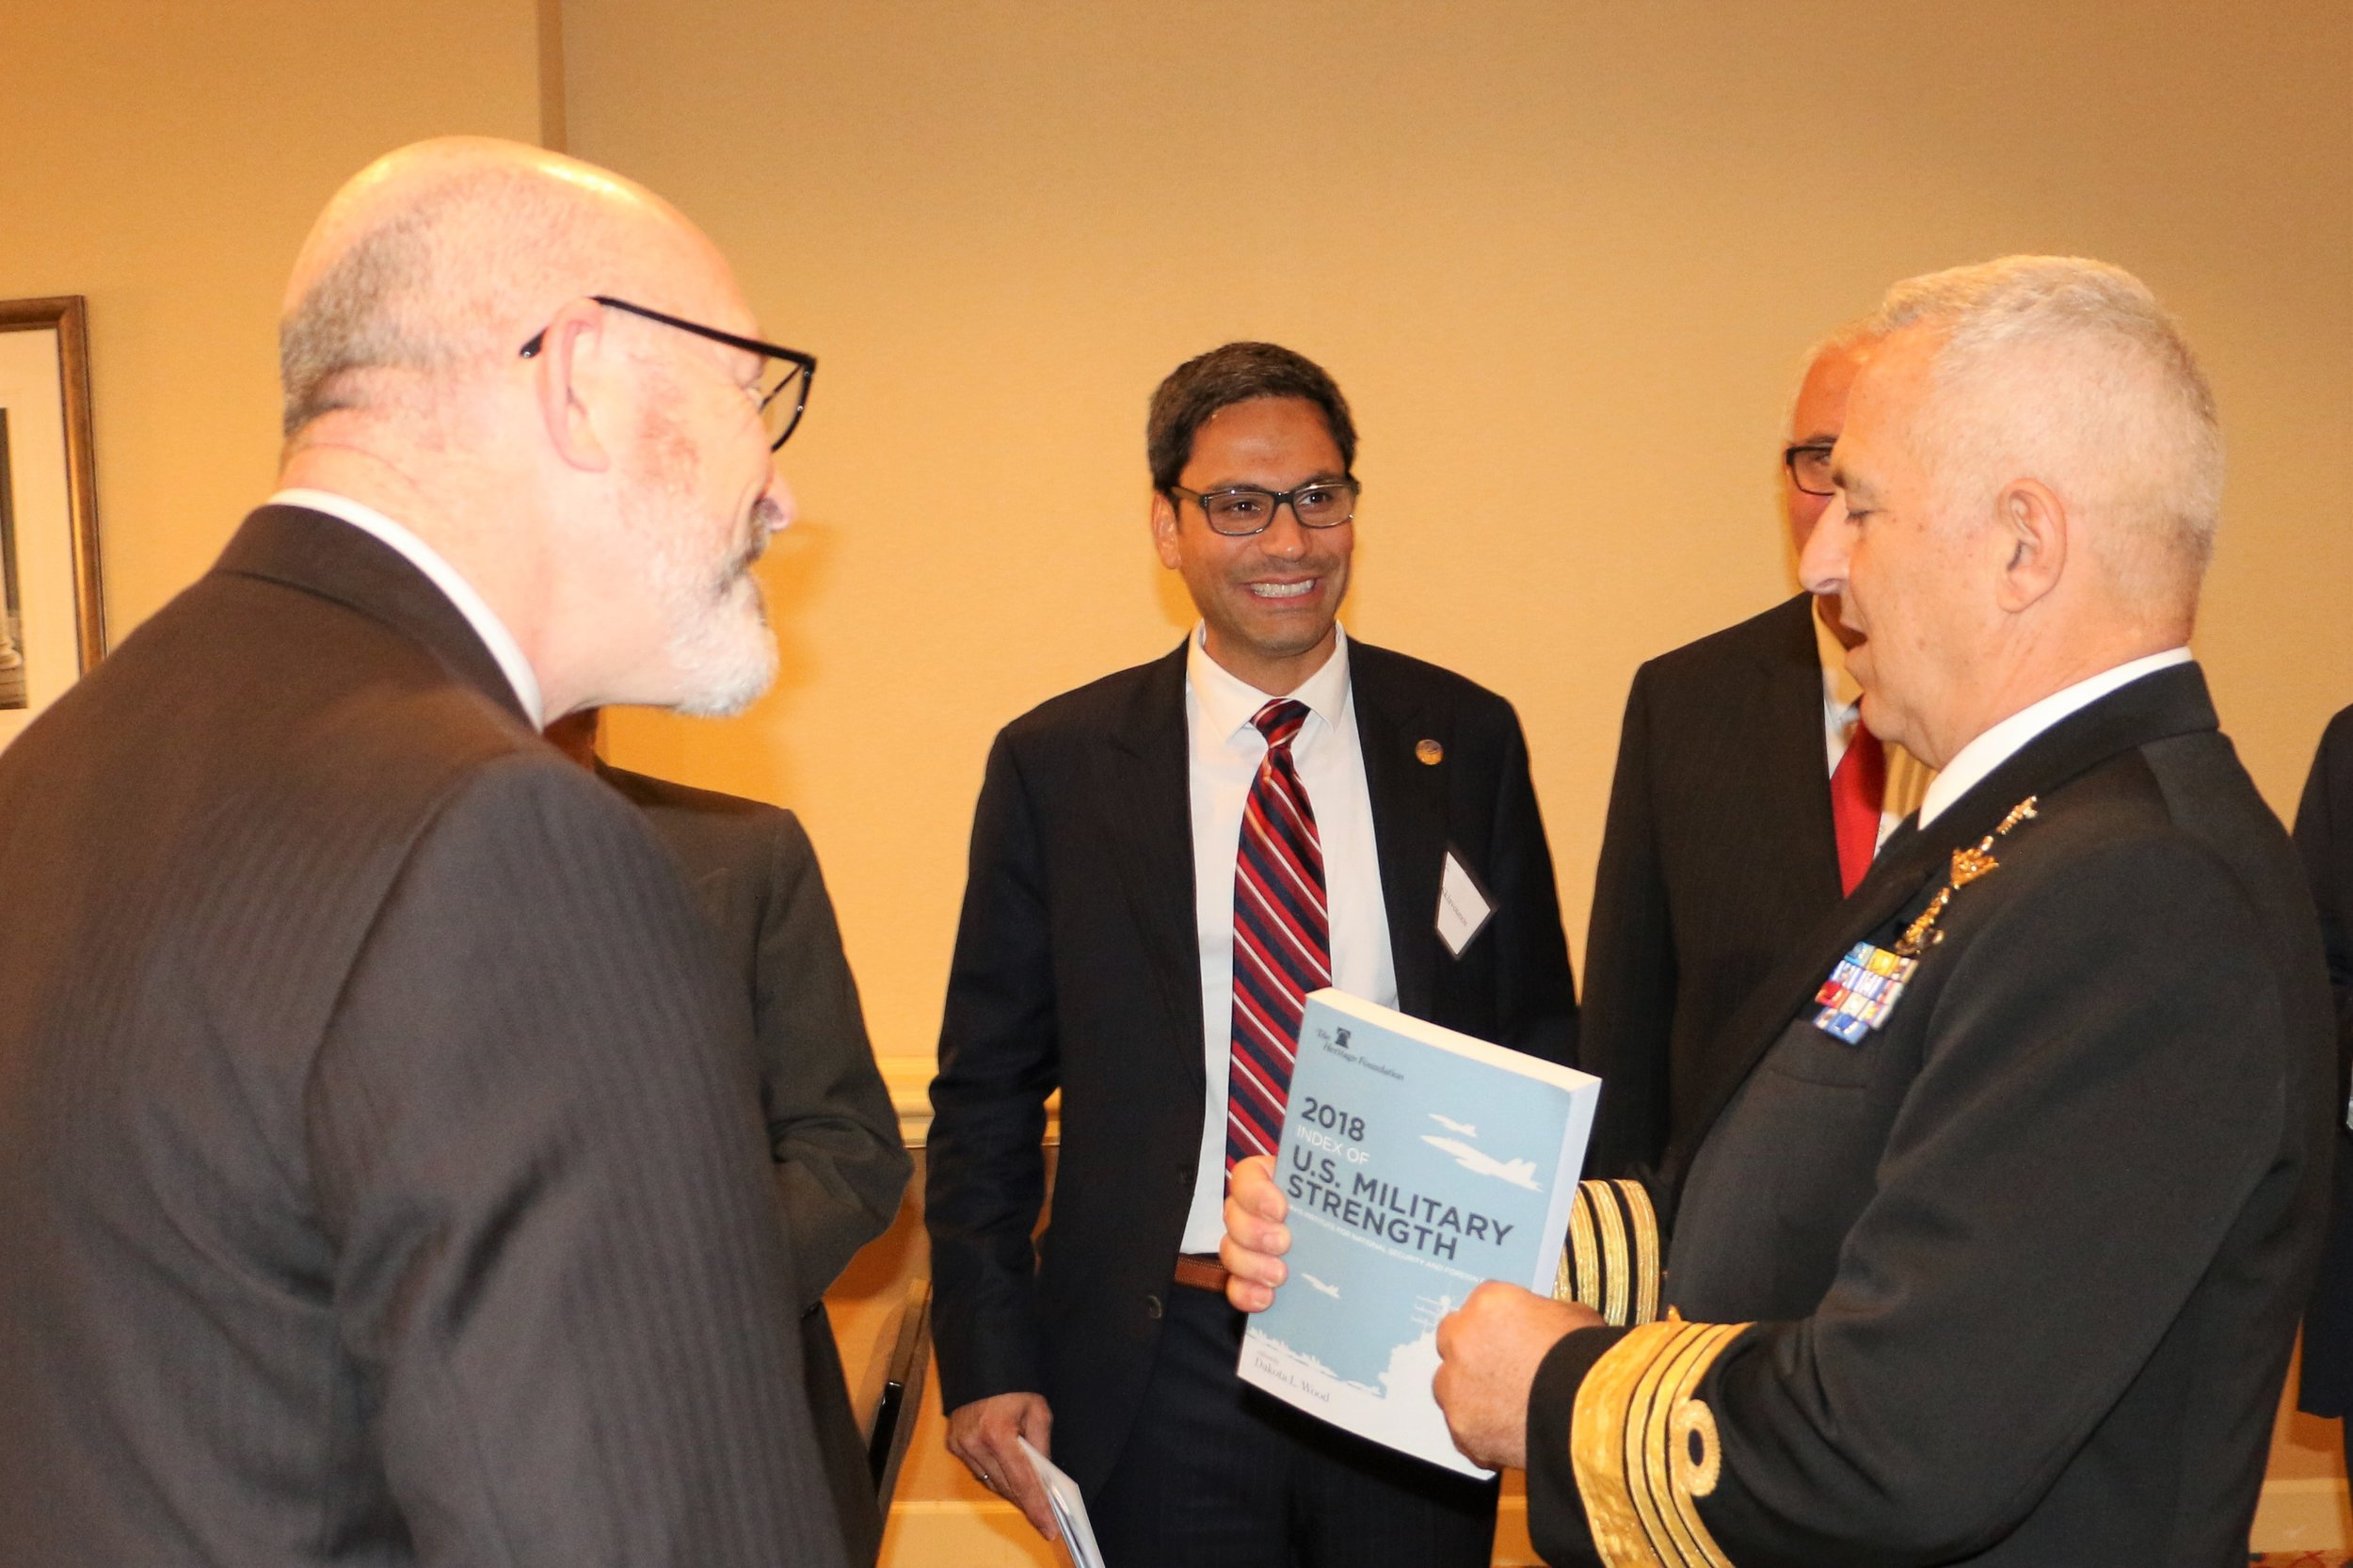 Admiral Apostolakis reviews the Heritage Foundation publication on U.S. Military Strength.